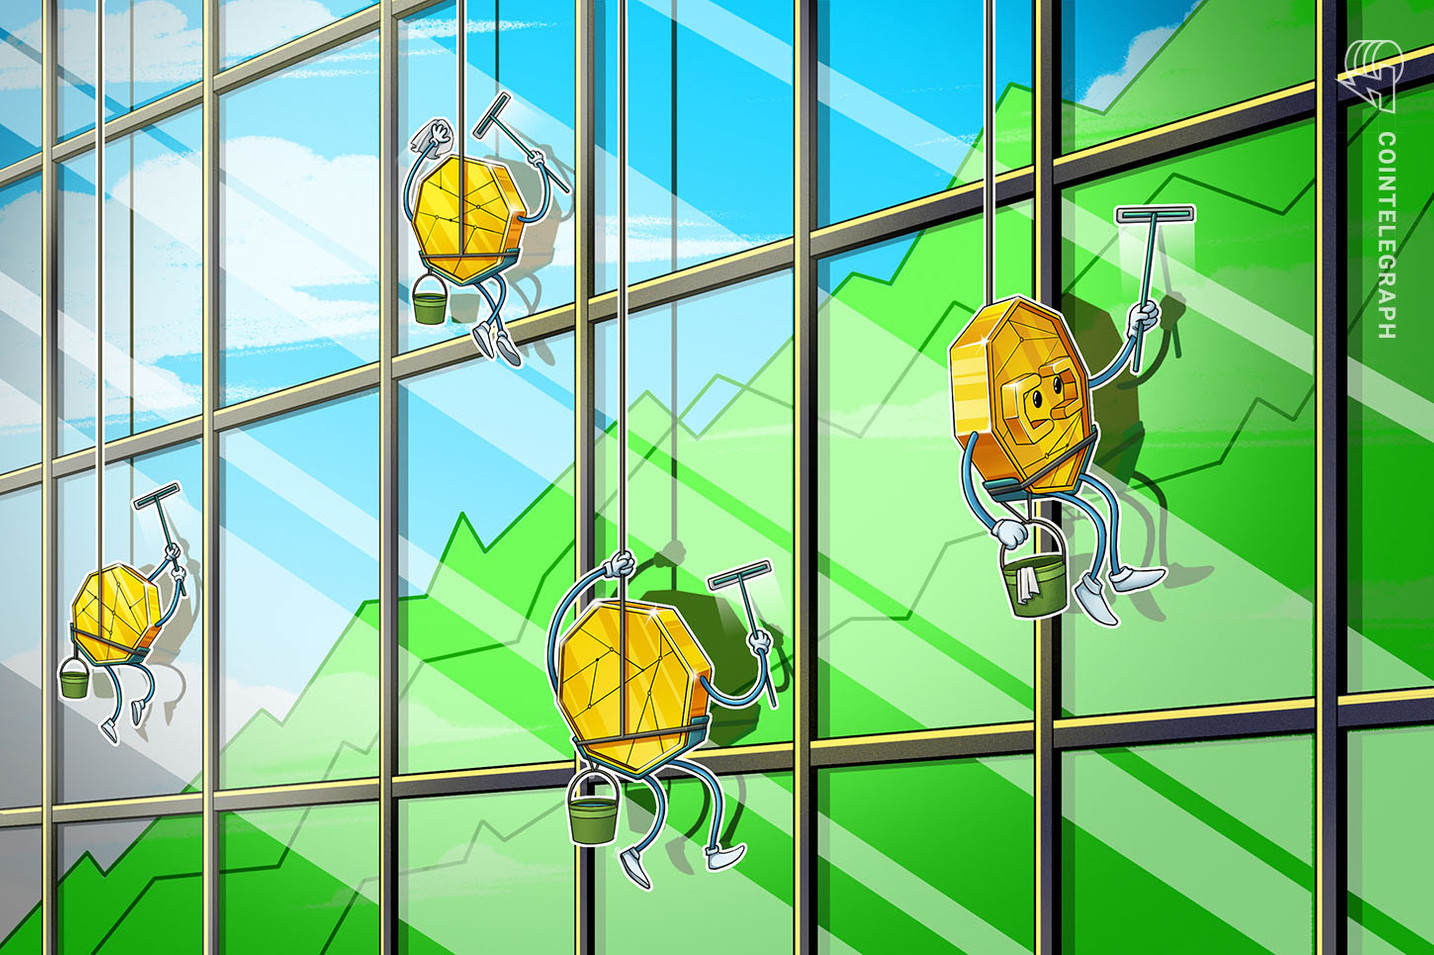 Ethereum Price Stable Despite Hard Fork, Altcoins See Small Gains